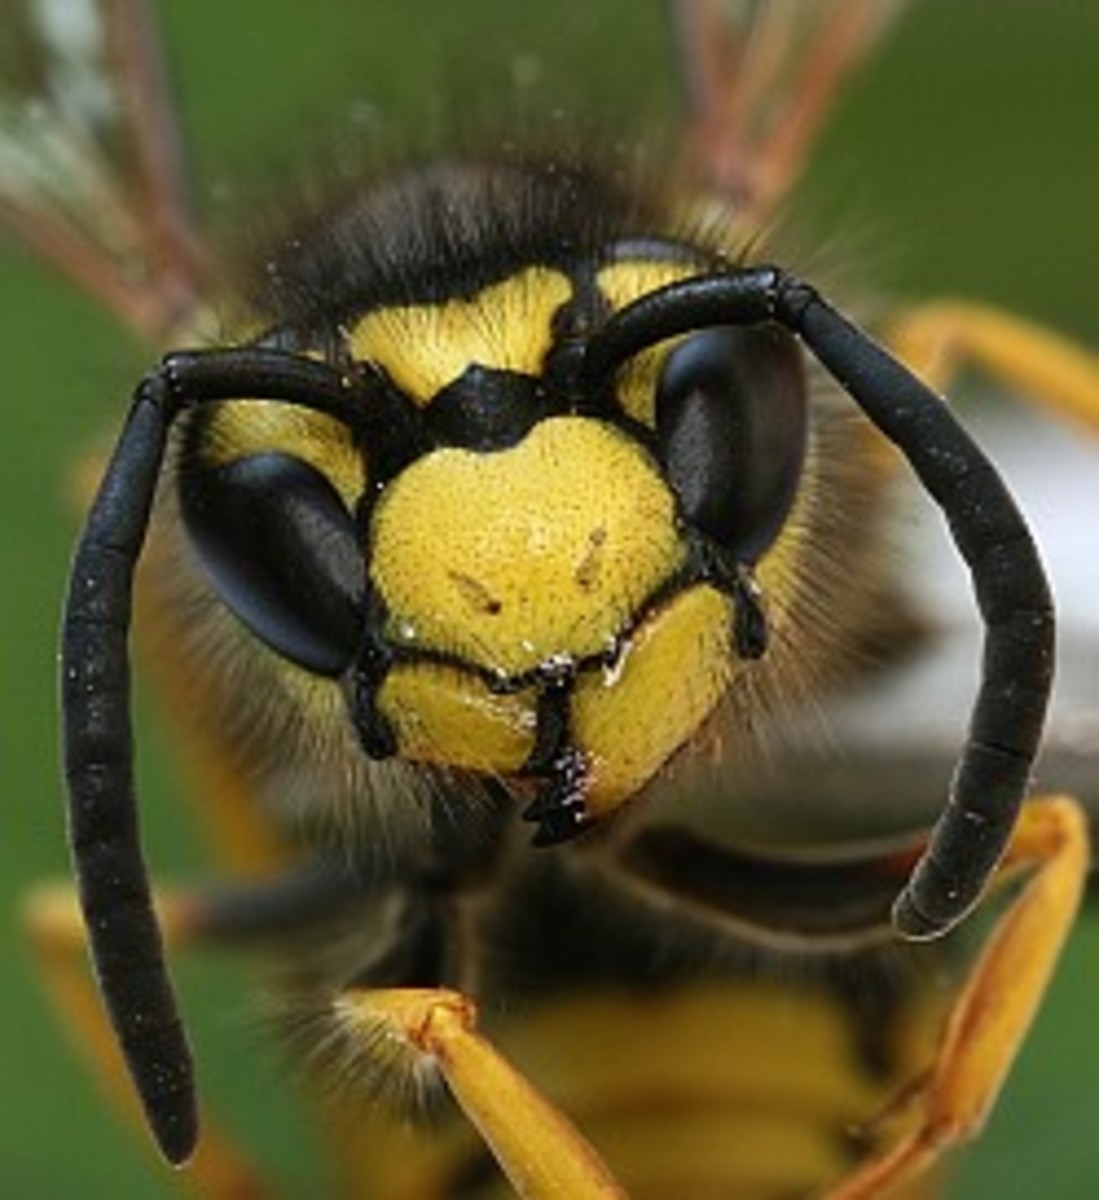 African killer bee. Photograph by Richard Bartz...licensed under creative commons